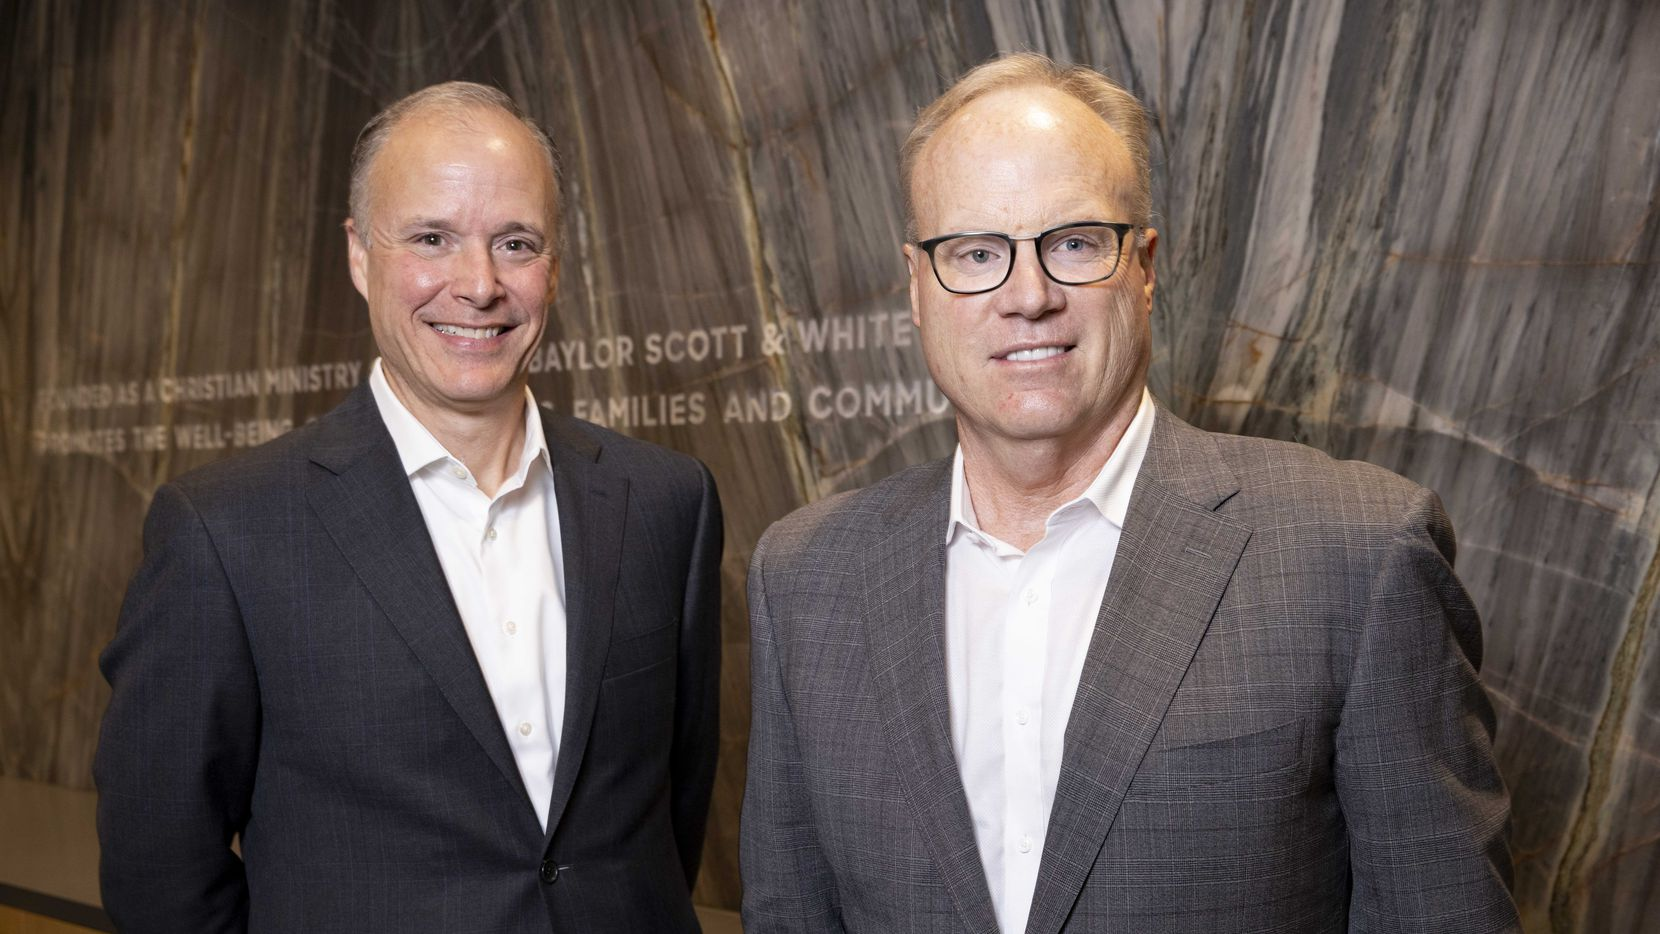 Pete McCanna, left, will step up from president to CEO of Baylor Scott & White Health, after Jim Hinton, right, retires at the end of the year. Baylor trustees called Hinton a transformational leader, and one of his early moves was to recruit McCanna from Northwestern Memorial Healthcare in Chicago.